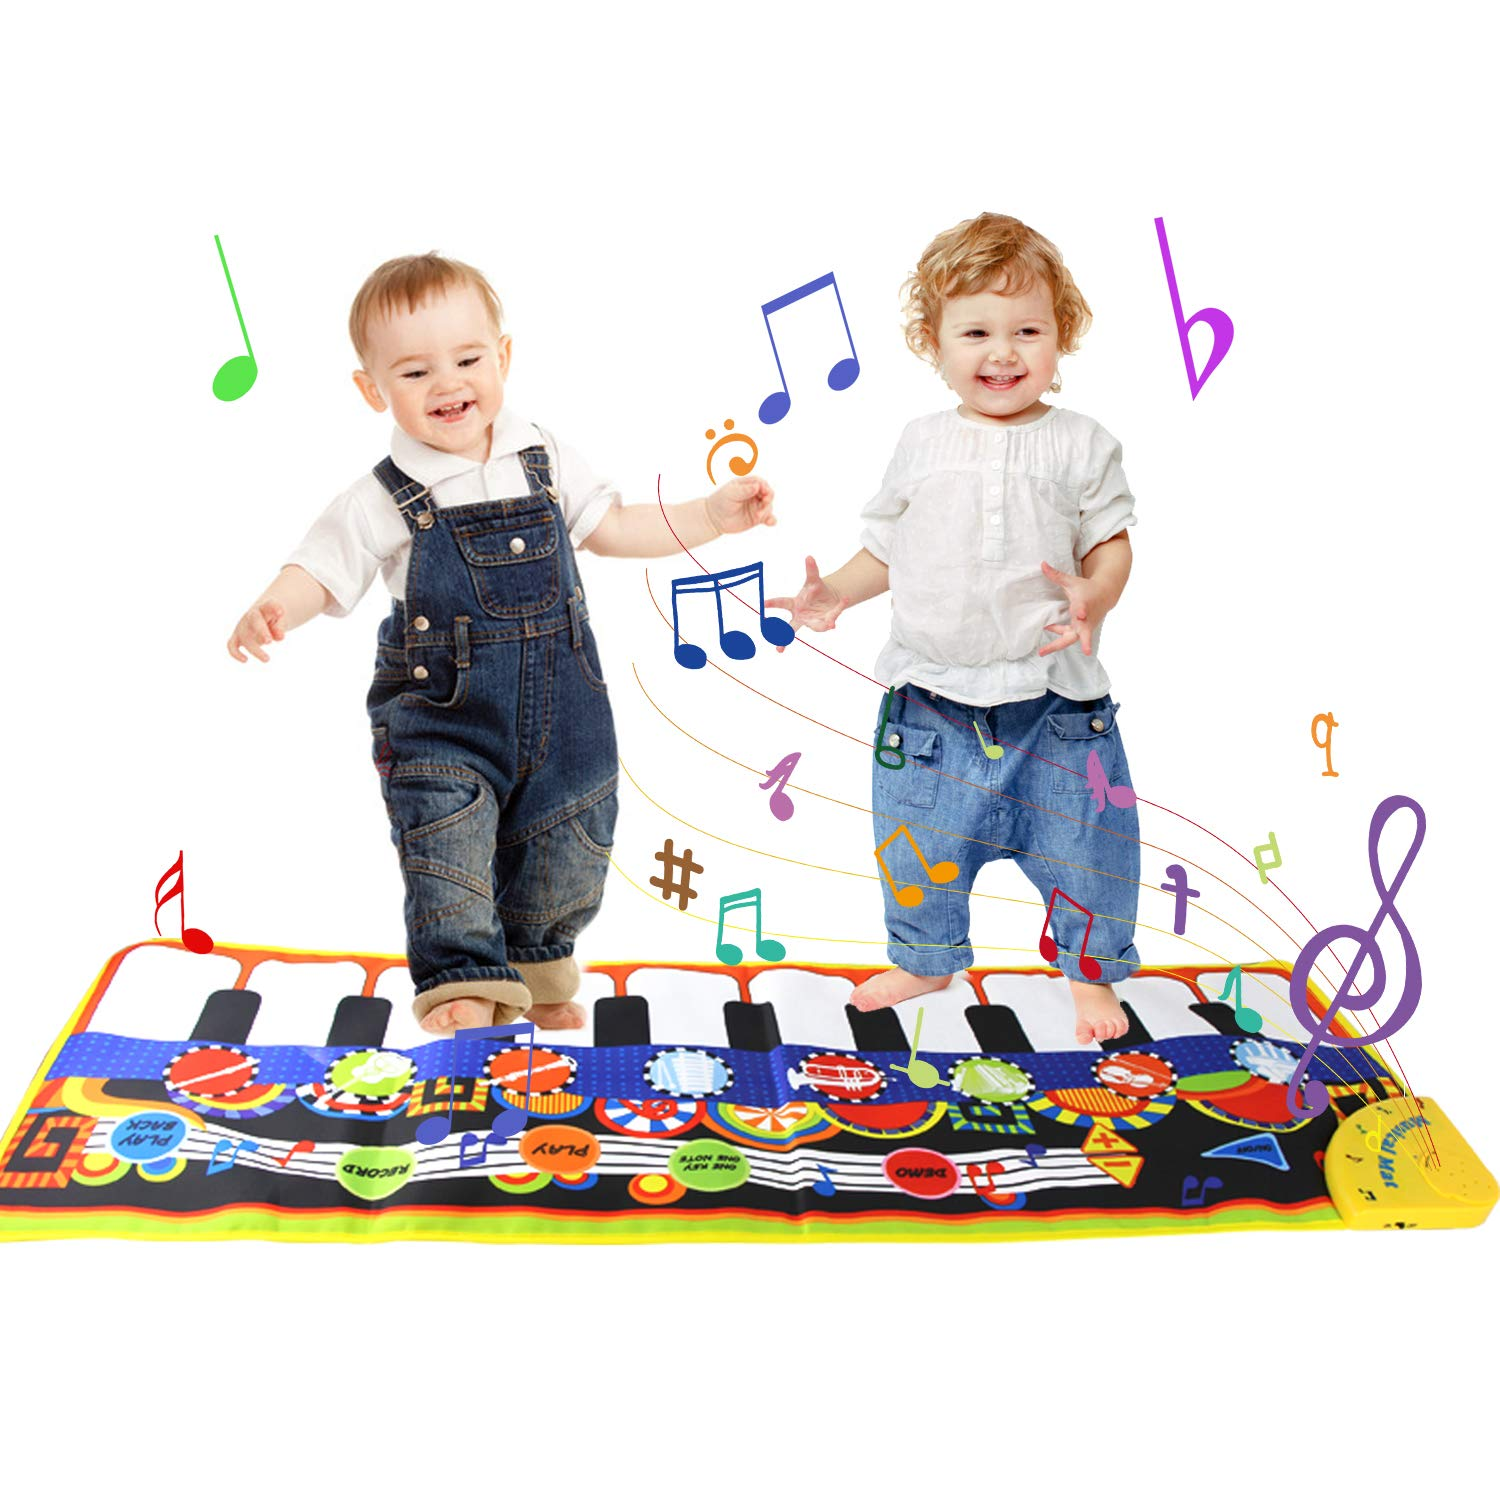 Joyfia Musical Piano Mat, 19 Keys Piano Keyboard Toddler Music Dance Mat, 8 Musical Instruments Touch Playmat Carpet, Kids Early Education Music Toys Gift for 3 Years Old Boys Girls (43.3x14.2 in)